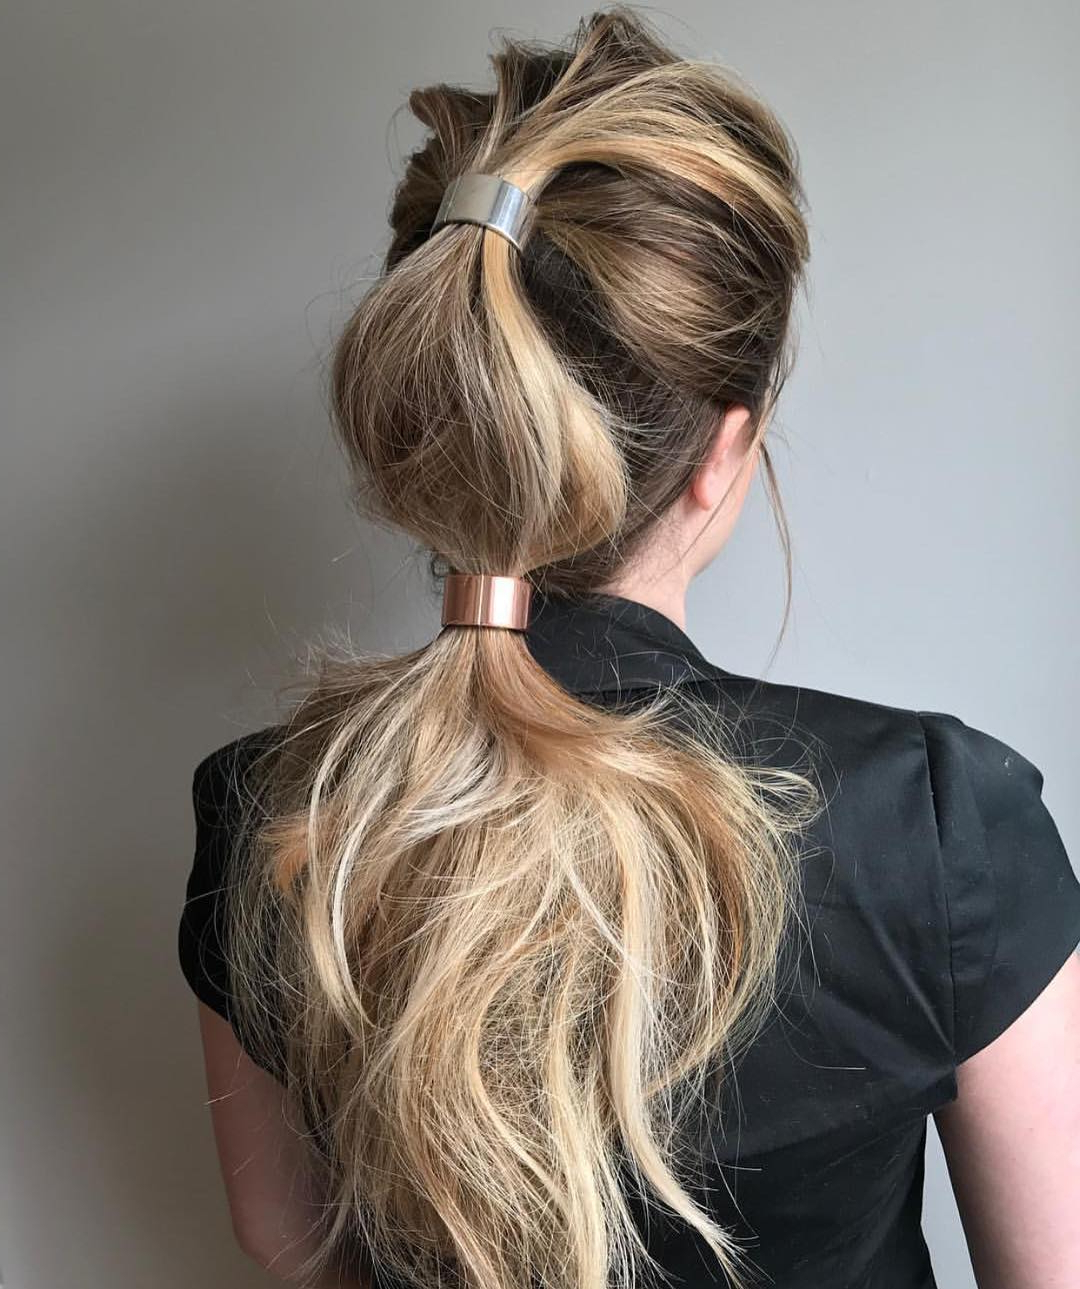 10 Trendiest Ponytail Hairstyles For Long Hair 2019 – Easy Pertaining To Most Up To Date Half Up Curly Hairstyles With Highlights (Gallery 9 of 20)